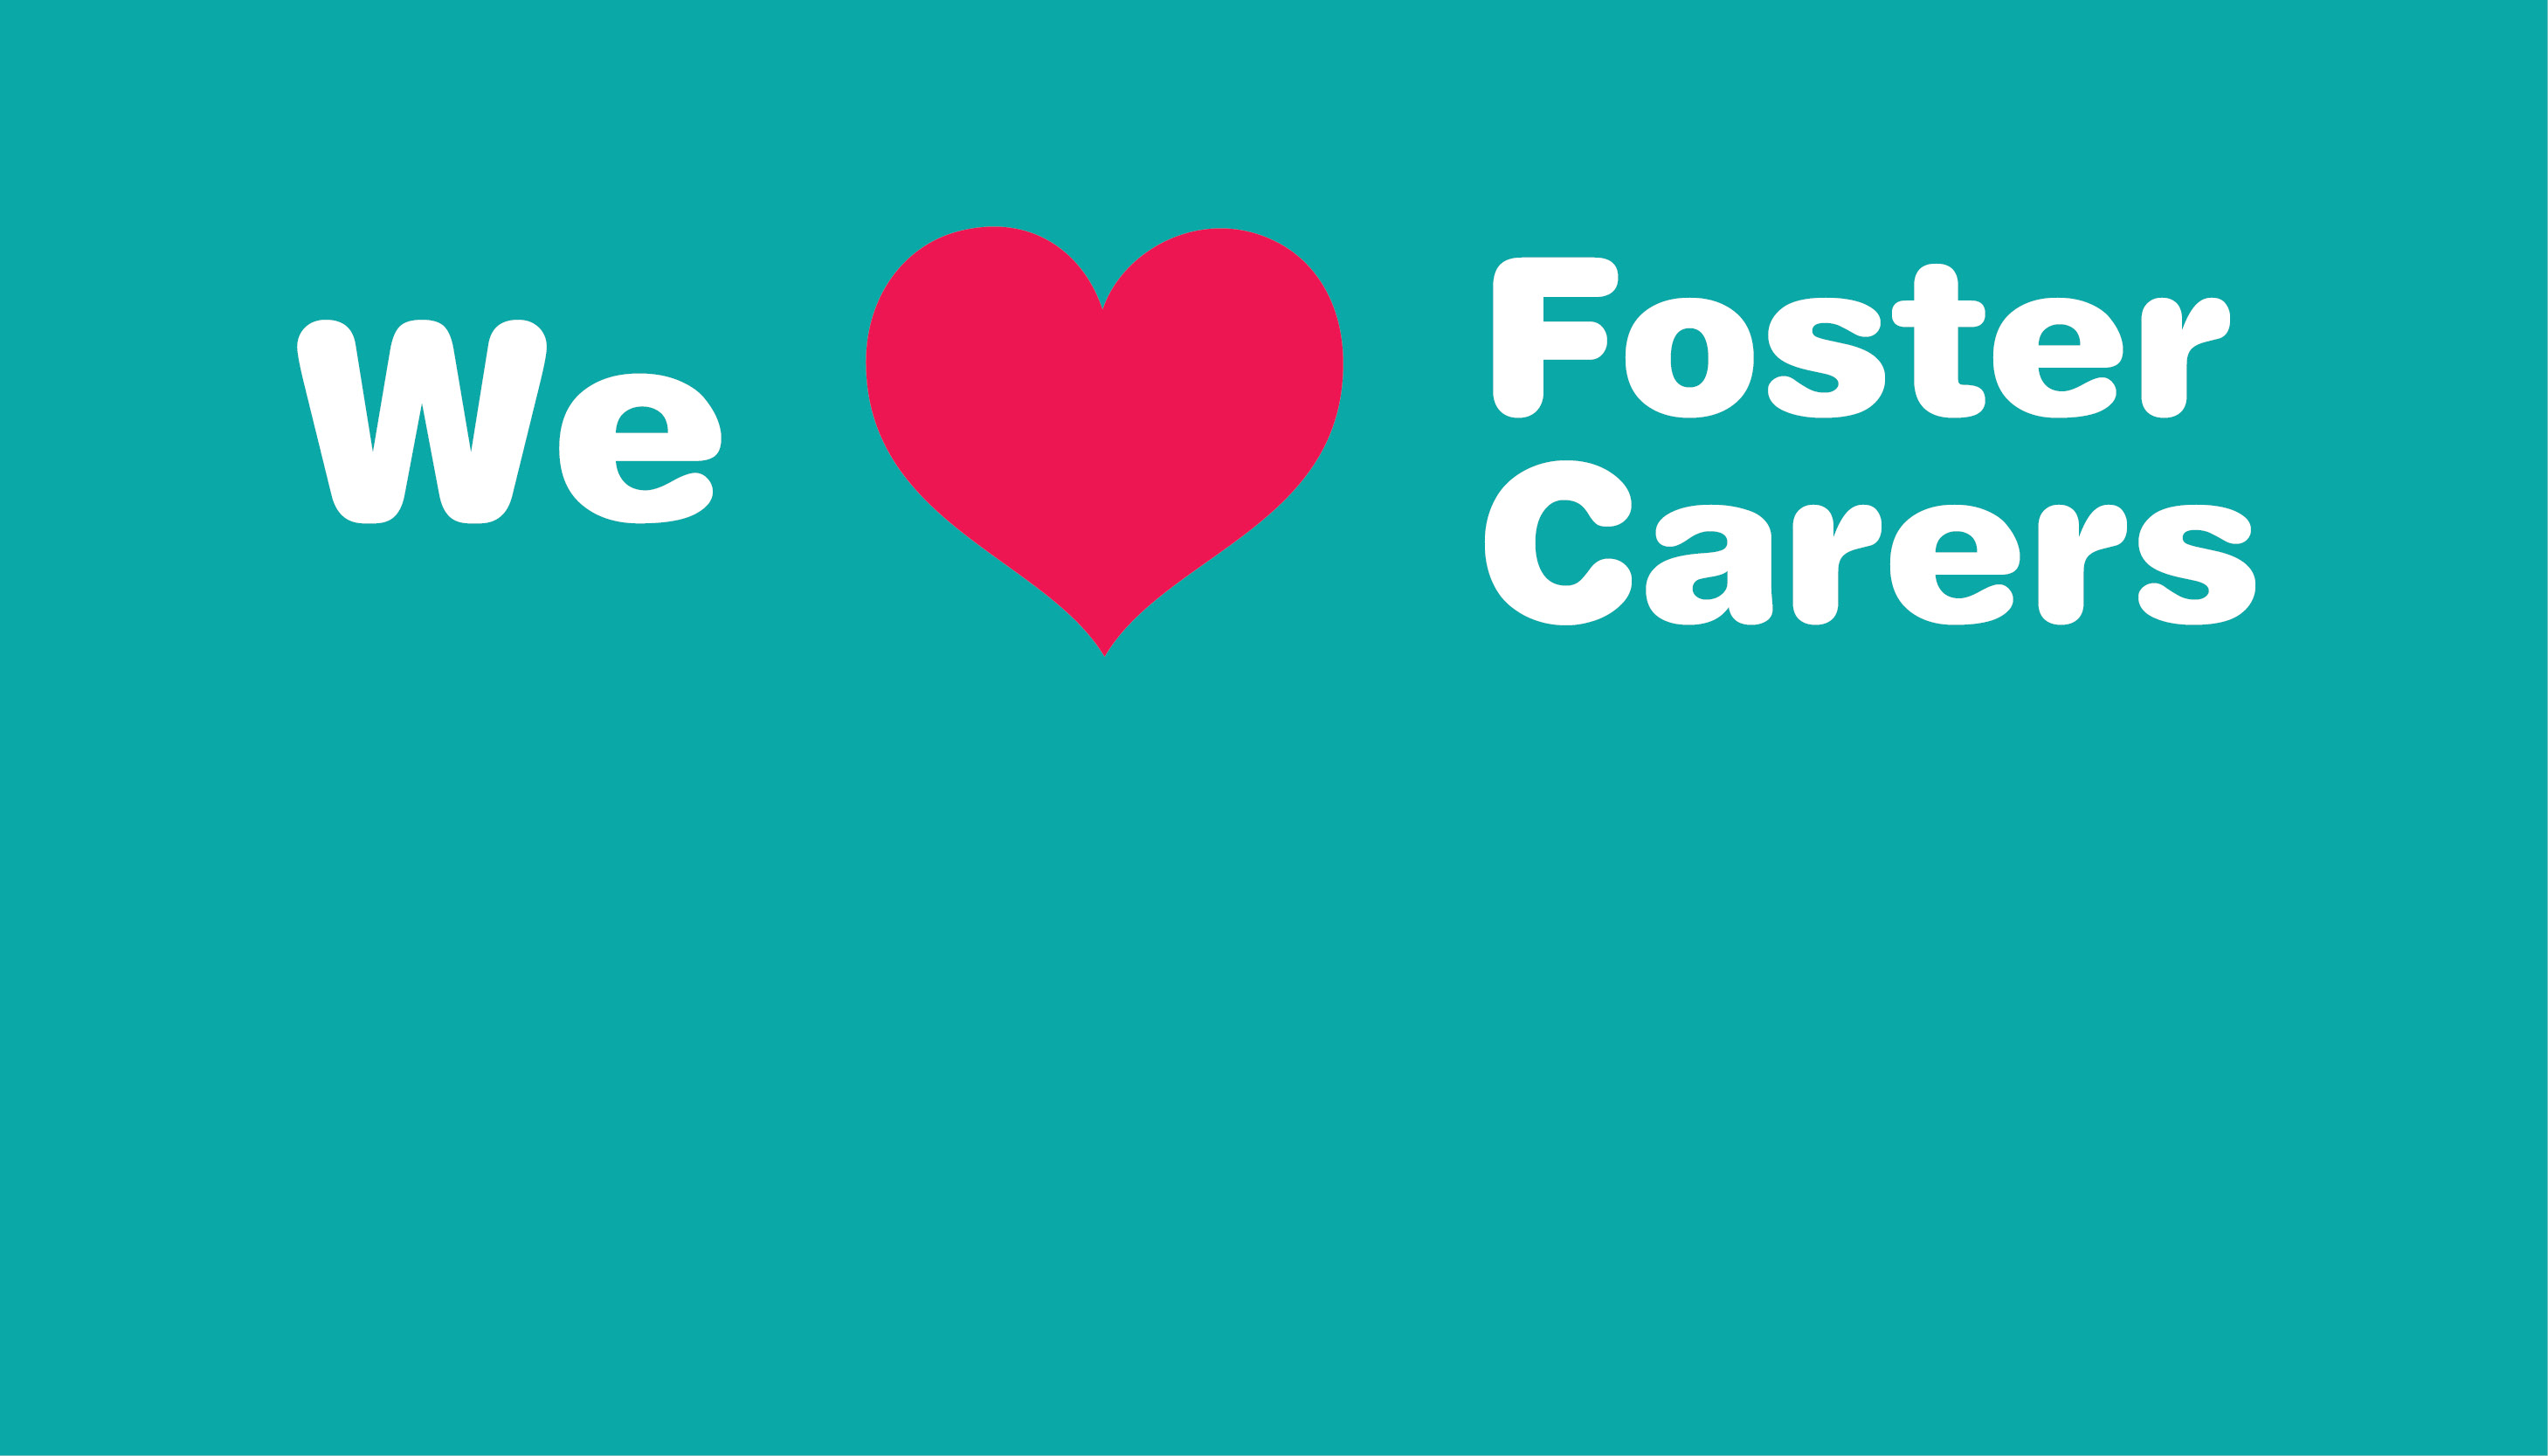 Foster Carers Build Bright Futures